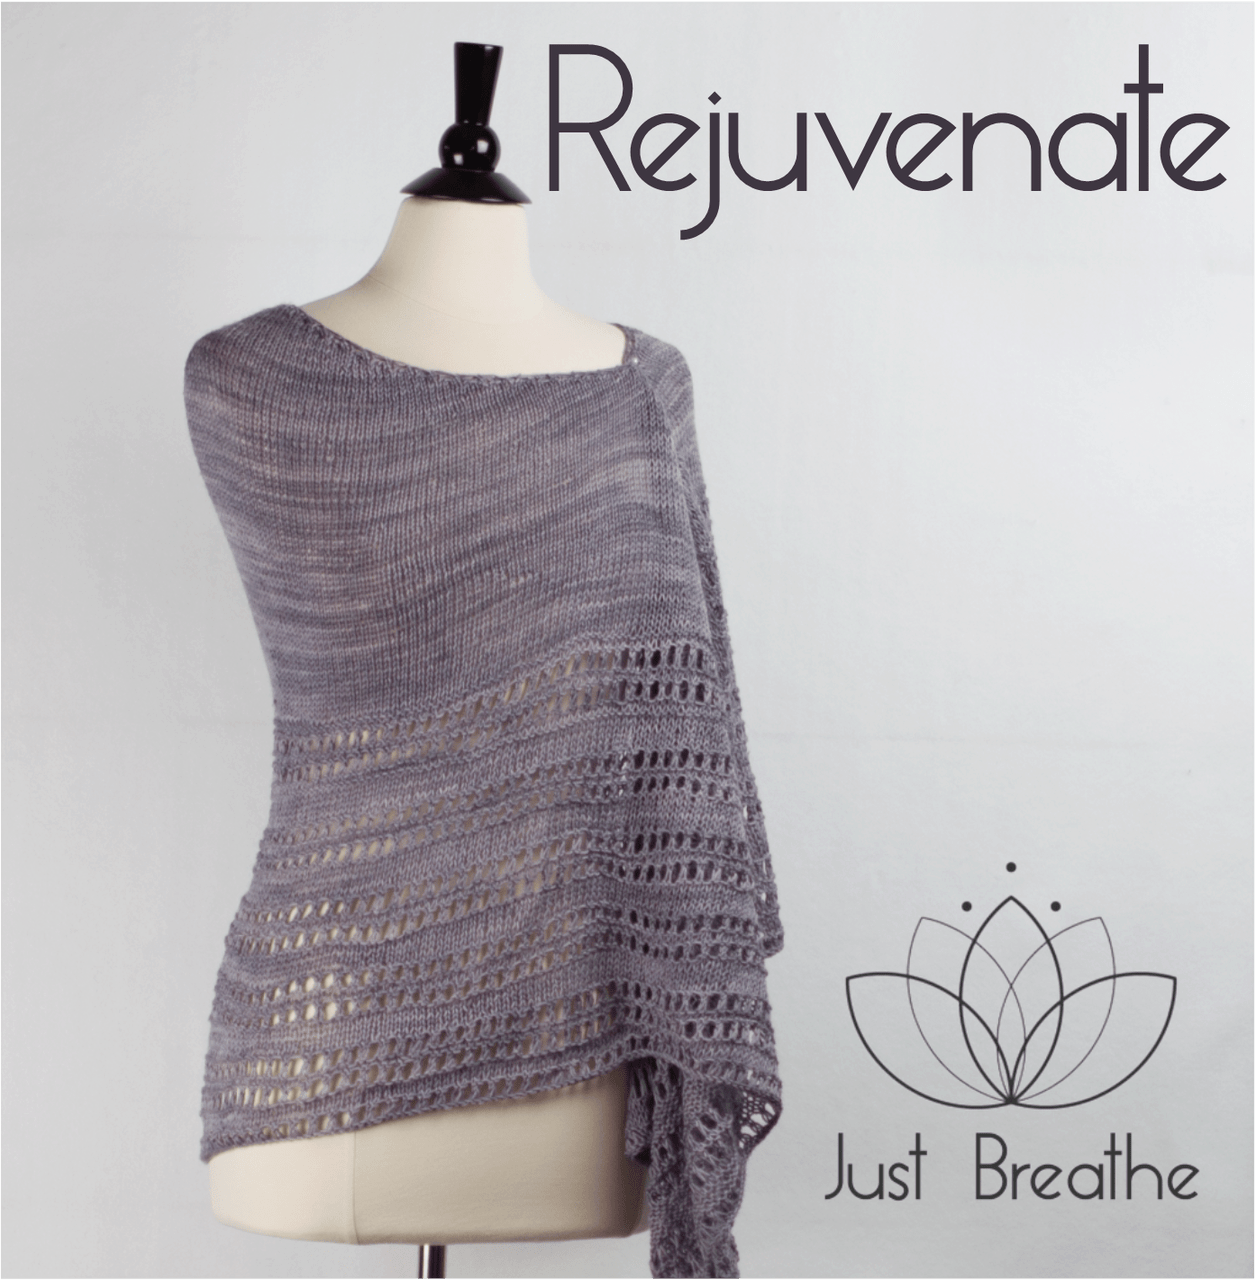 Rejuvenate Shawl Kit